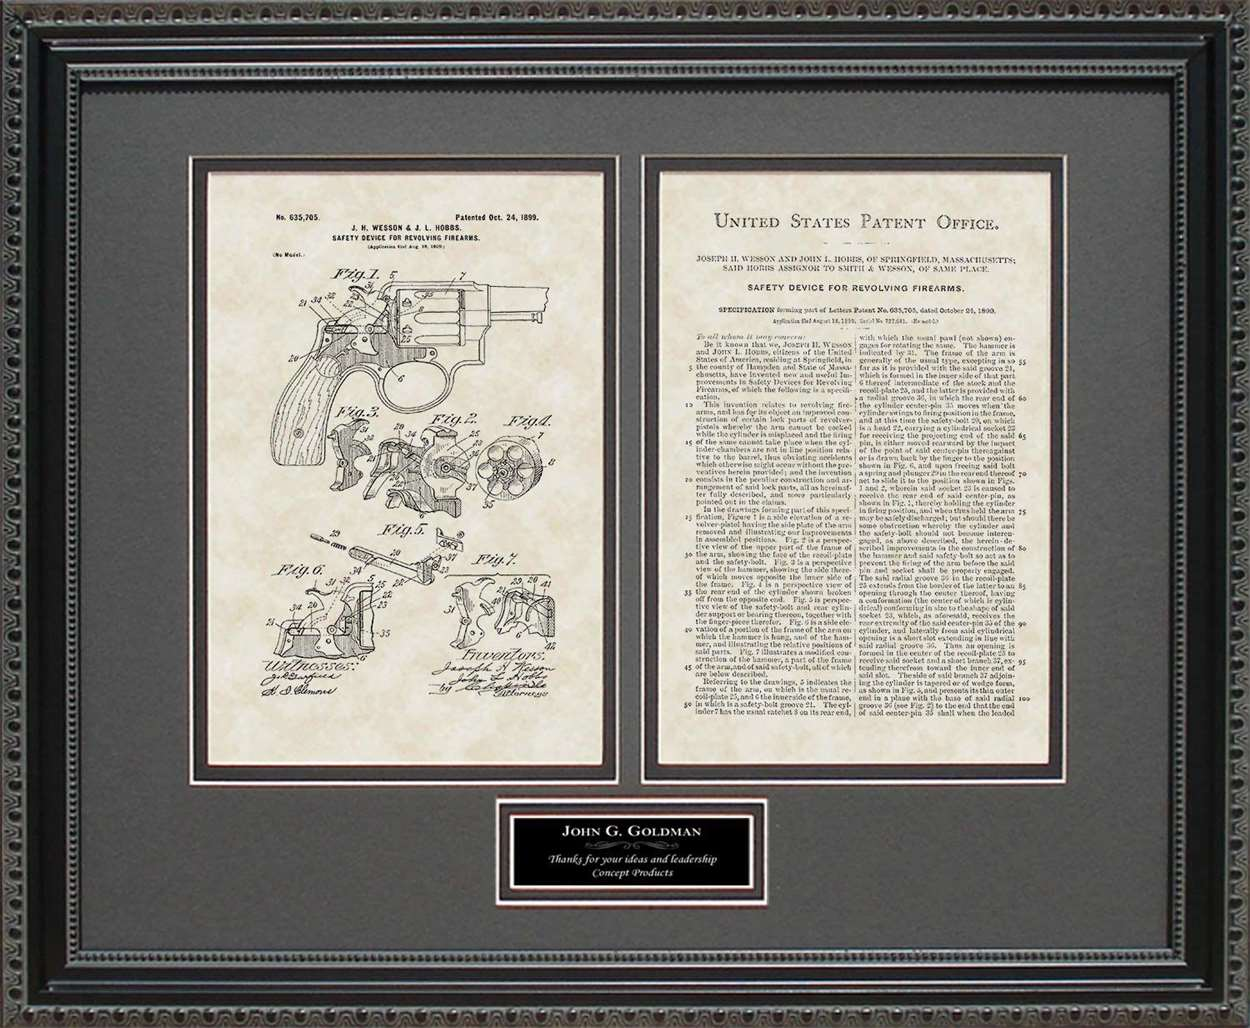 Personalized Early Smith & Wesson Patent, Art & Copy, Wesson, 1899